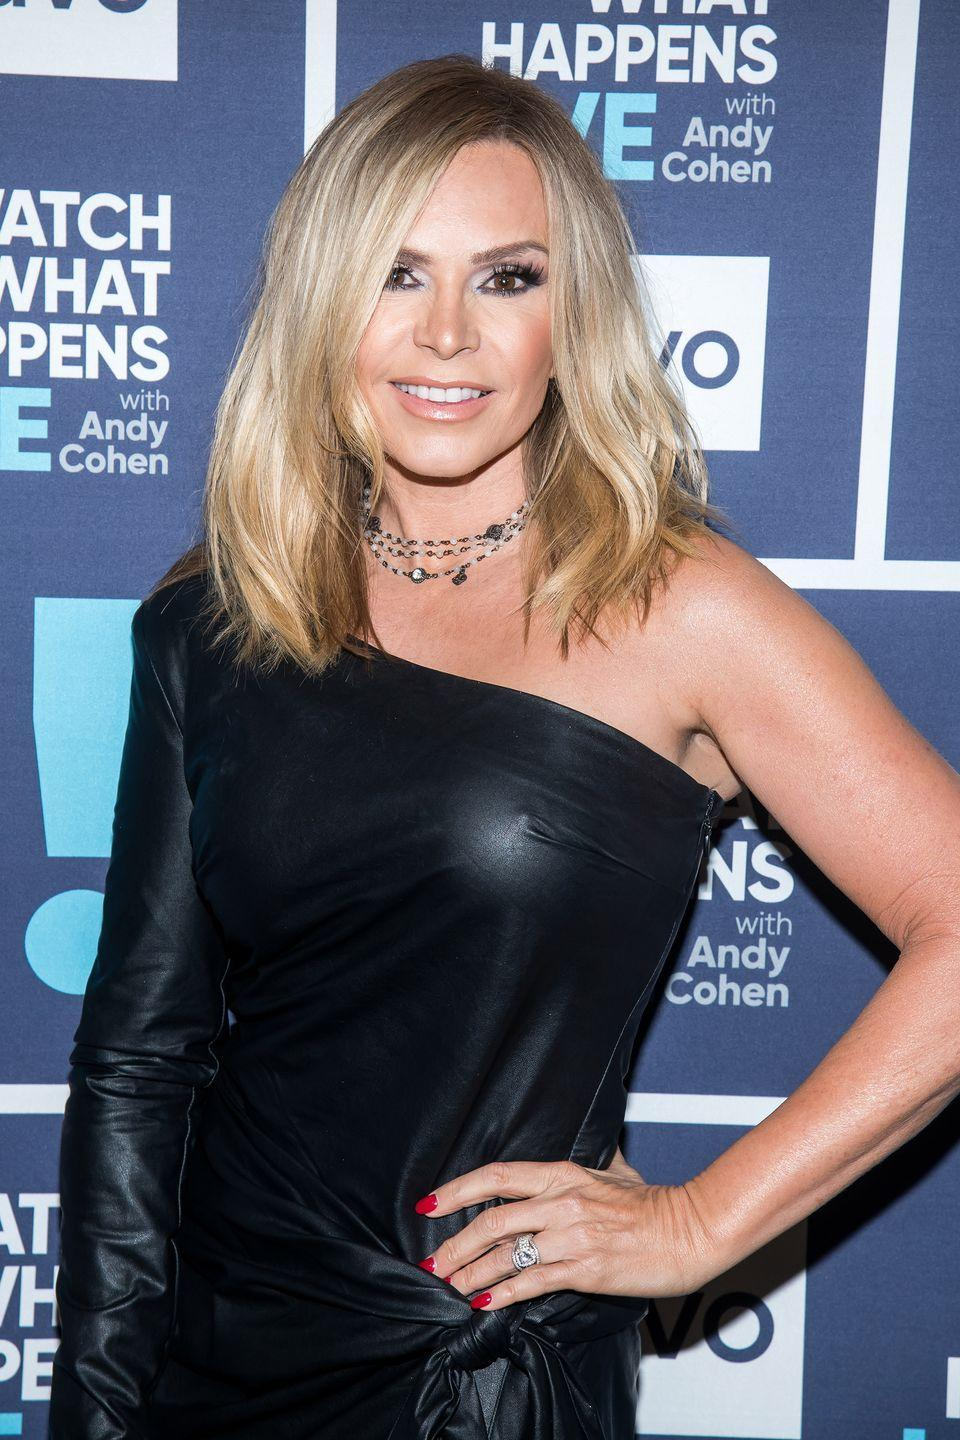 """<p>This <em>Real Housewives of Orange County</em> star is known for her amazing bikini body. She <a href=""""https://www.prevention.com/life/a28408052/tamra-judge-arm-workout-instagram/"""" rel=""""nofollow noopener"""" target=""""_blank"""" data-ylk=""""slk:works out"""" class=""""link rapid-noclick-resp"""">works out</a> at Cut Fitness and—no surprise here—recently won a <a href=""""https://healthyceleb.com/tamra-judge-workout-routine-diet-plan/50479"""" rel=""""nofollow noopener"""" target=""""_blank"""" data-ylk=""""slk:fitness competition"""" class=""""link rapid-noclick-resp"""">fitness competition</a>.</p>"""